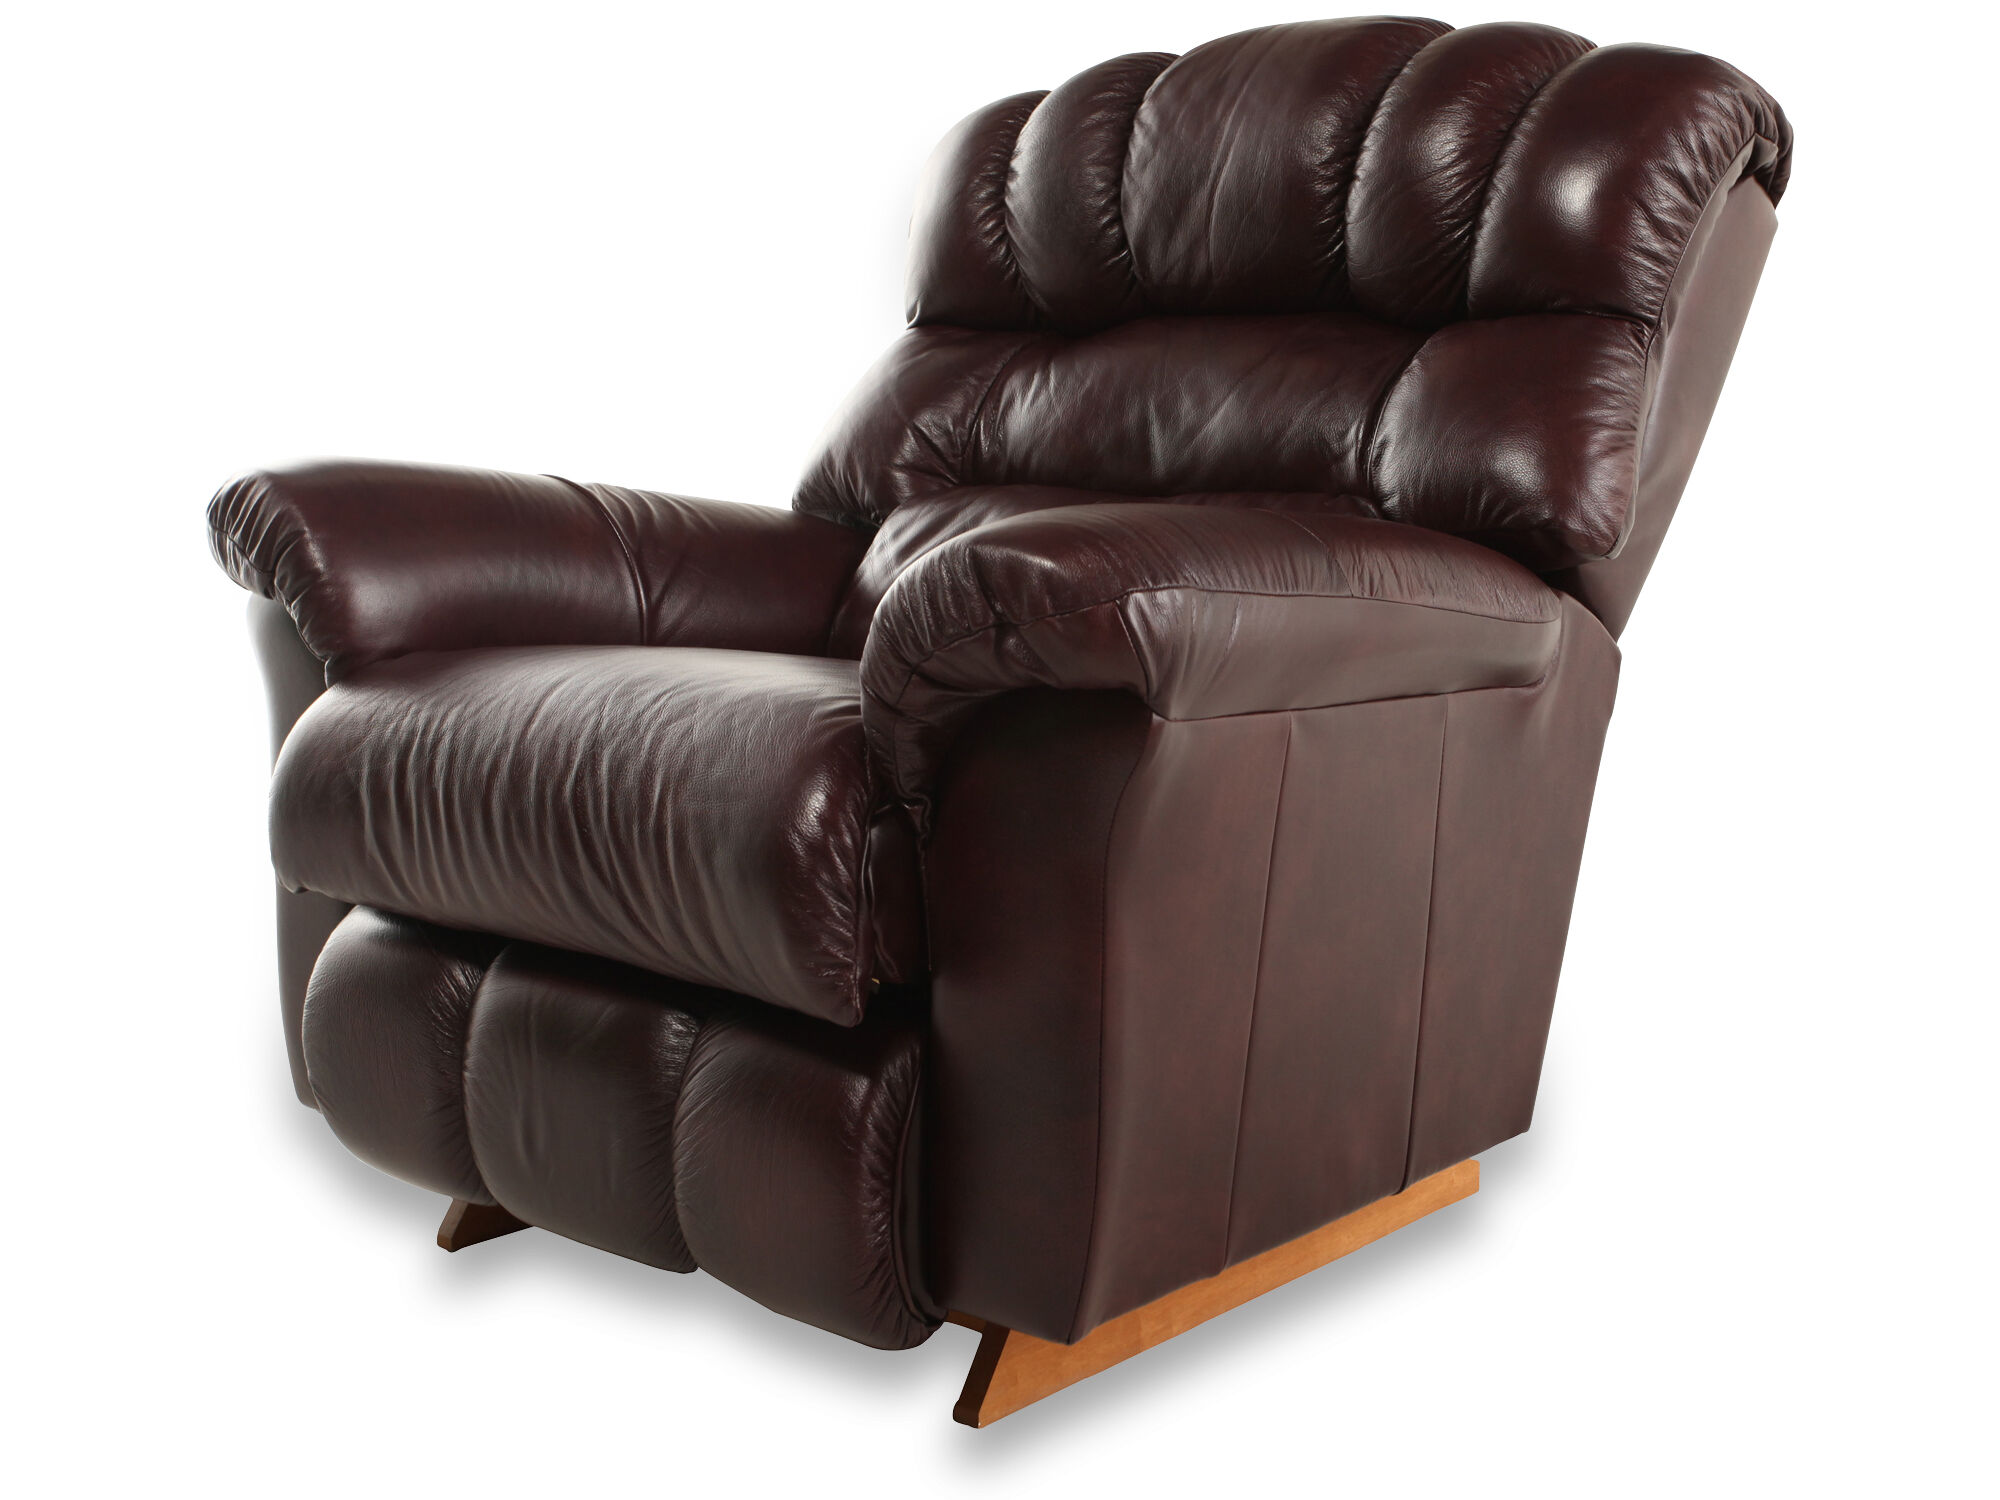 La-Z-Boy Crandell Bordeaux Leather Recliner  sc 1 st  Mathis Brothers : lazy boy crandell recliner - islam-shia.org